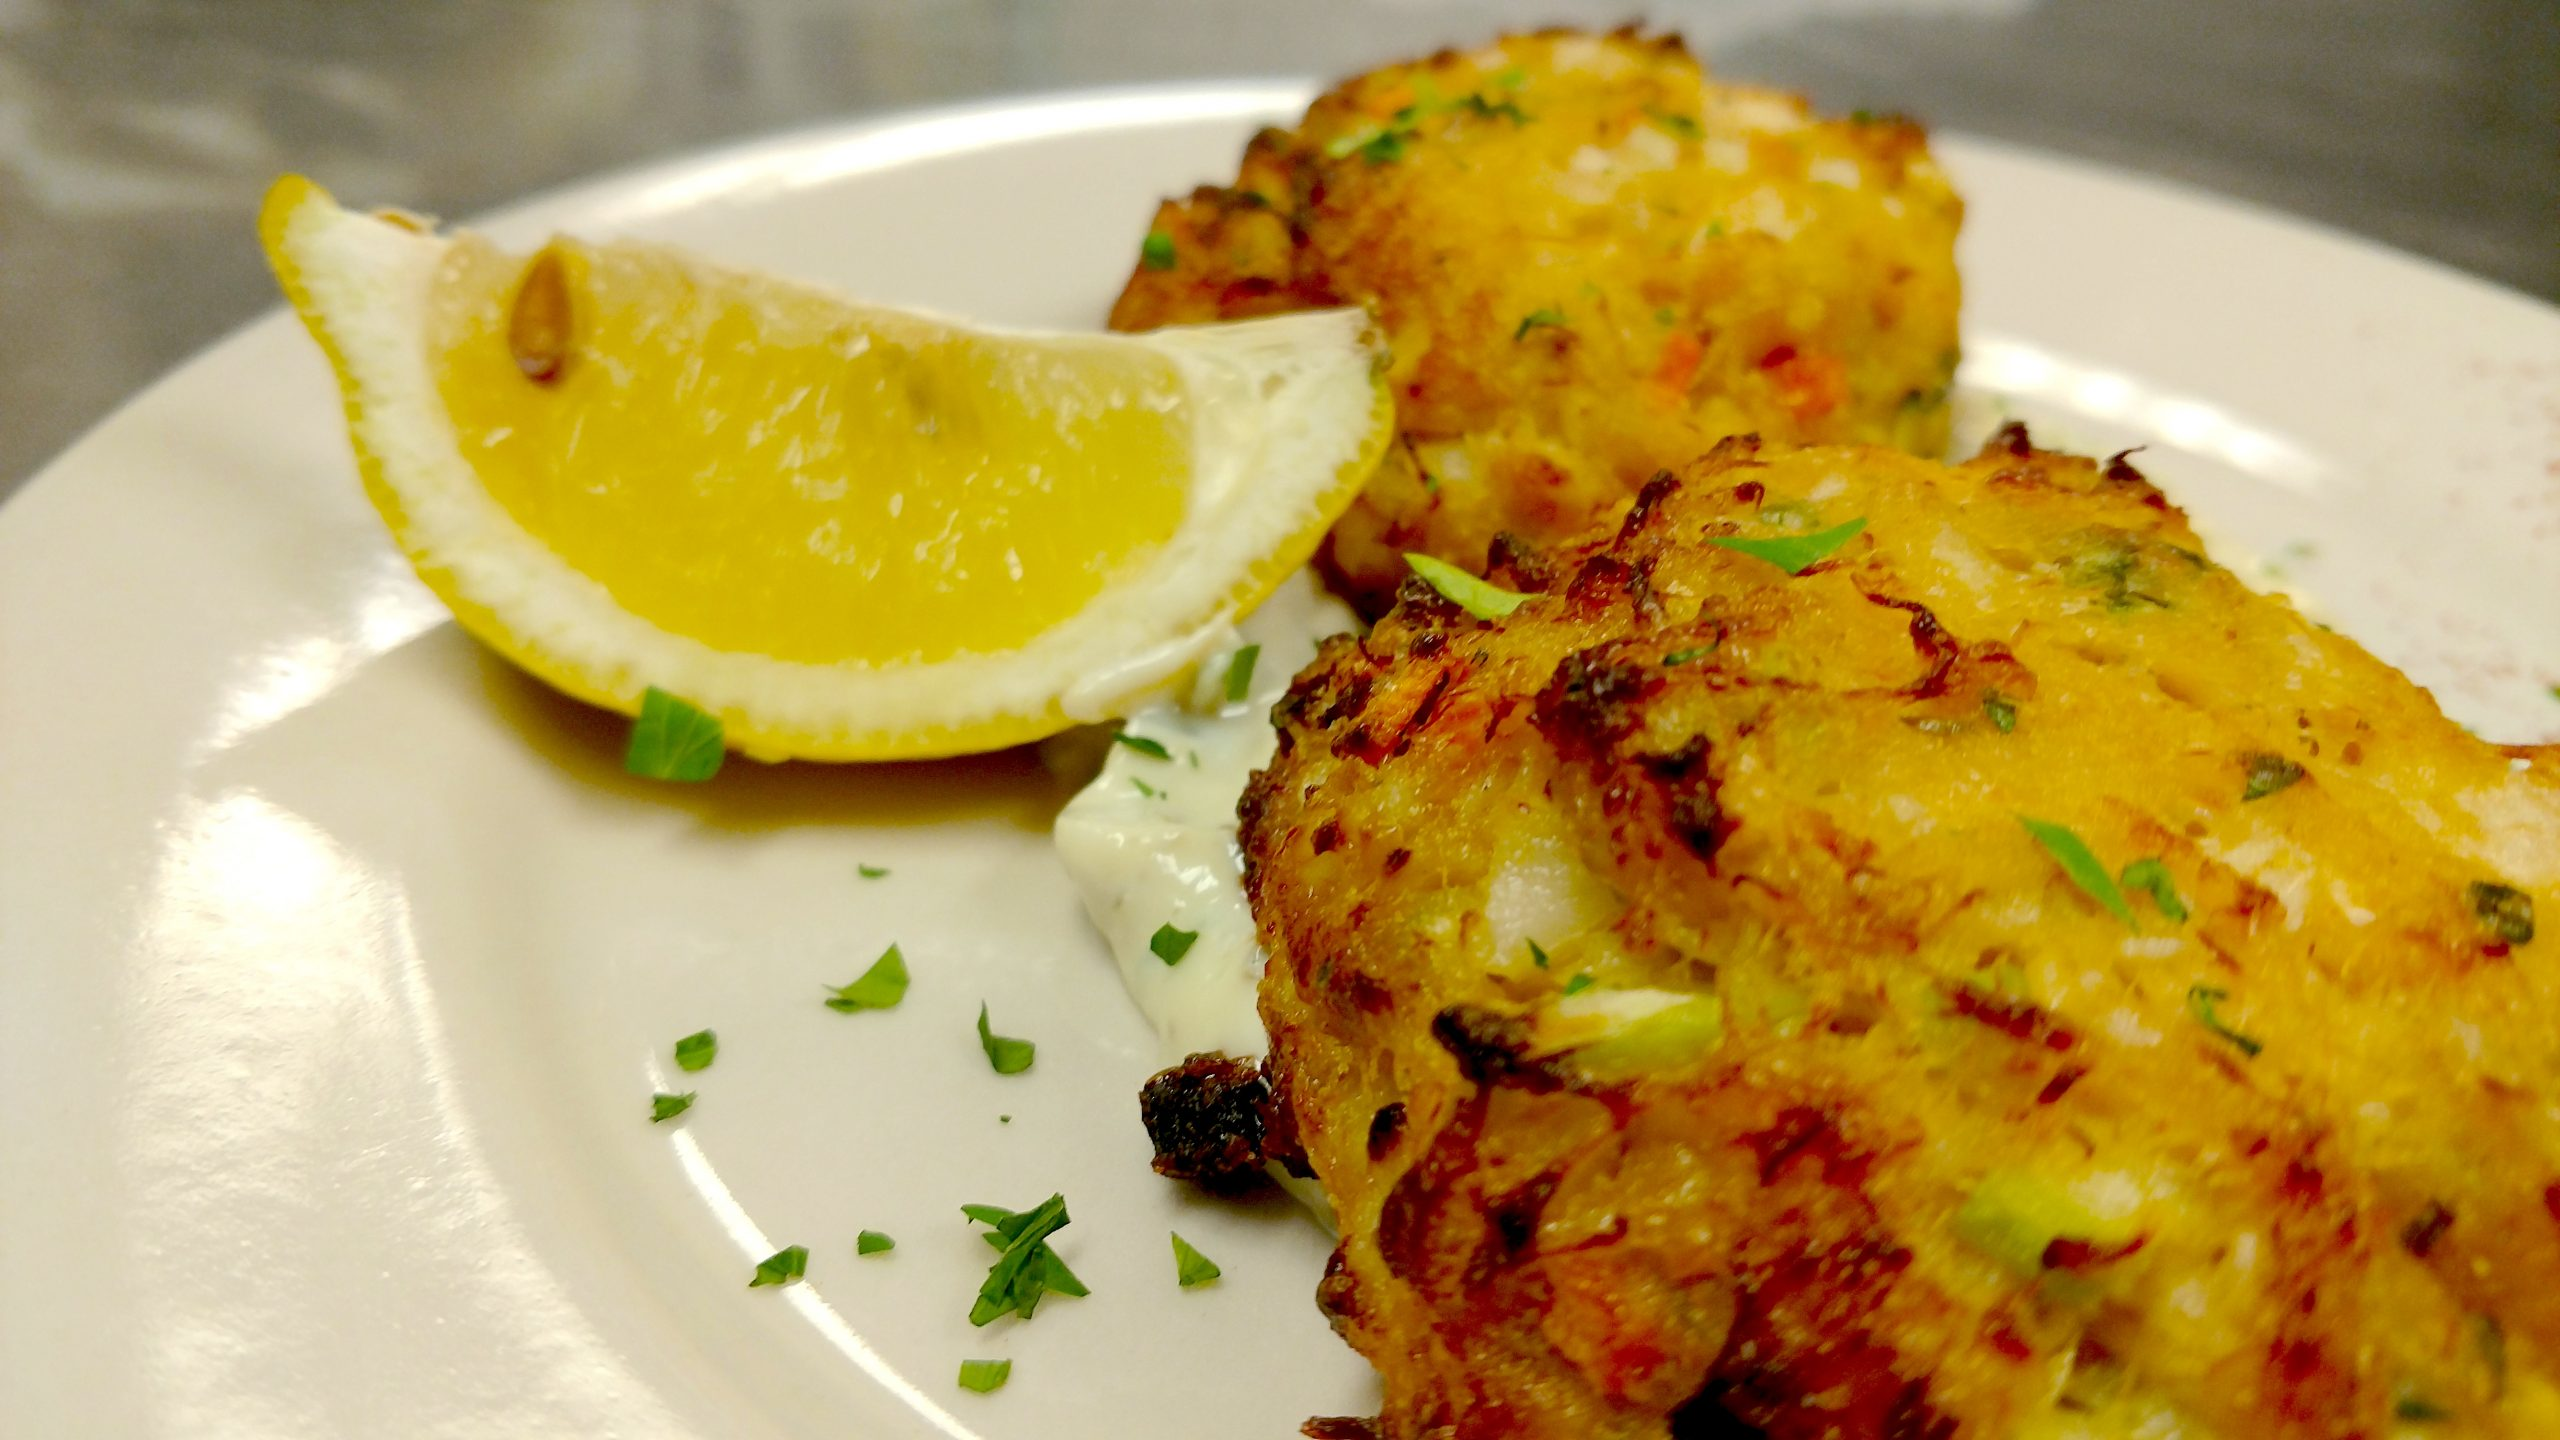 Jake and Telly's Specials - Crab Cakes